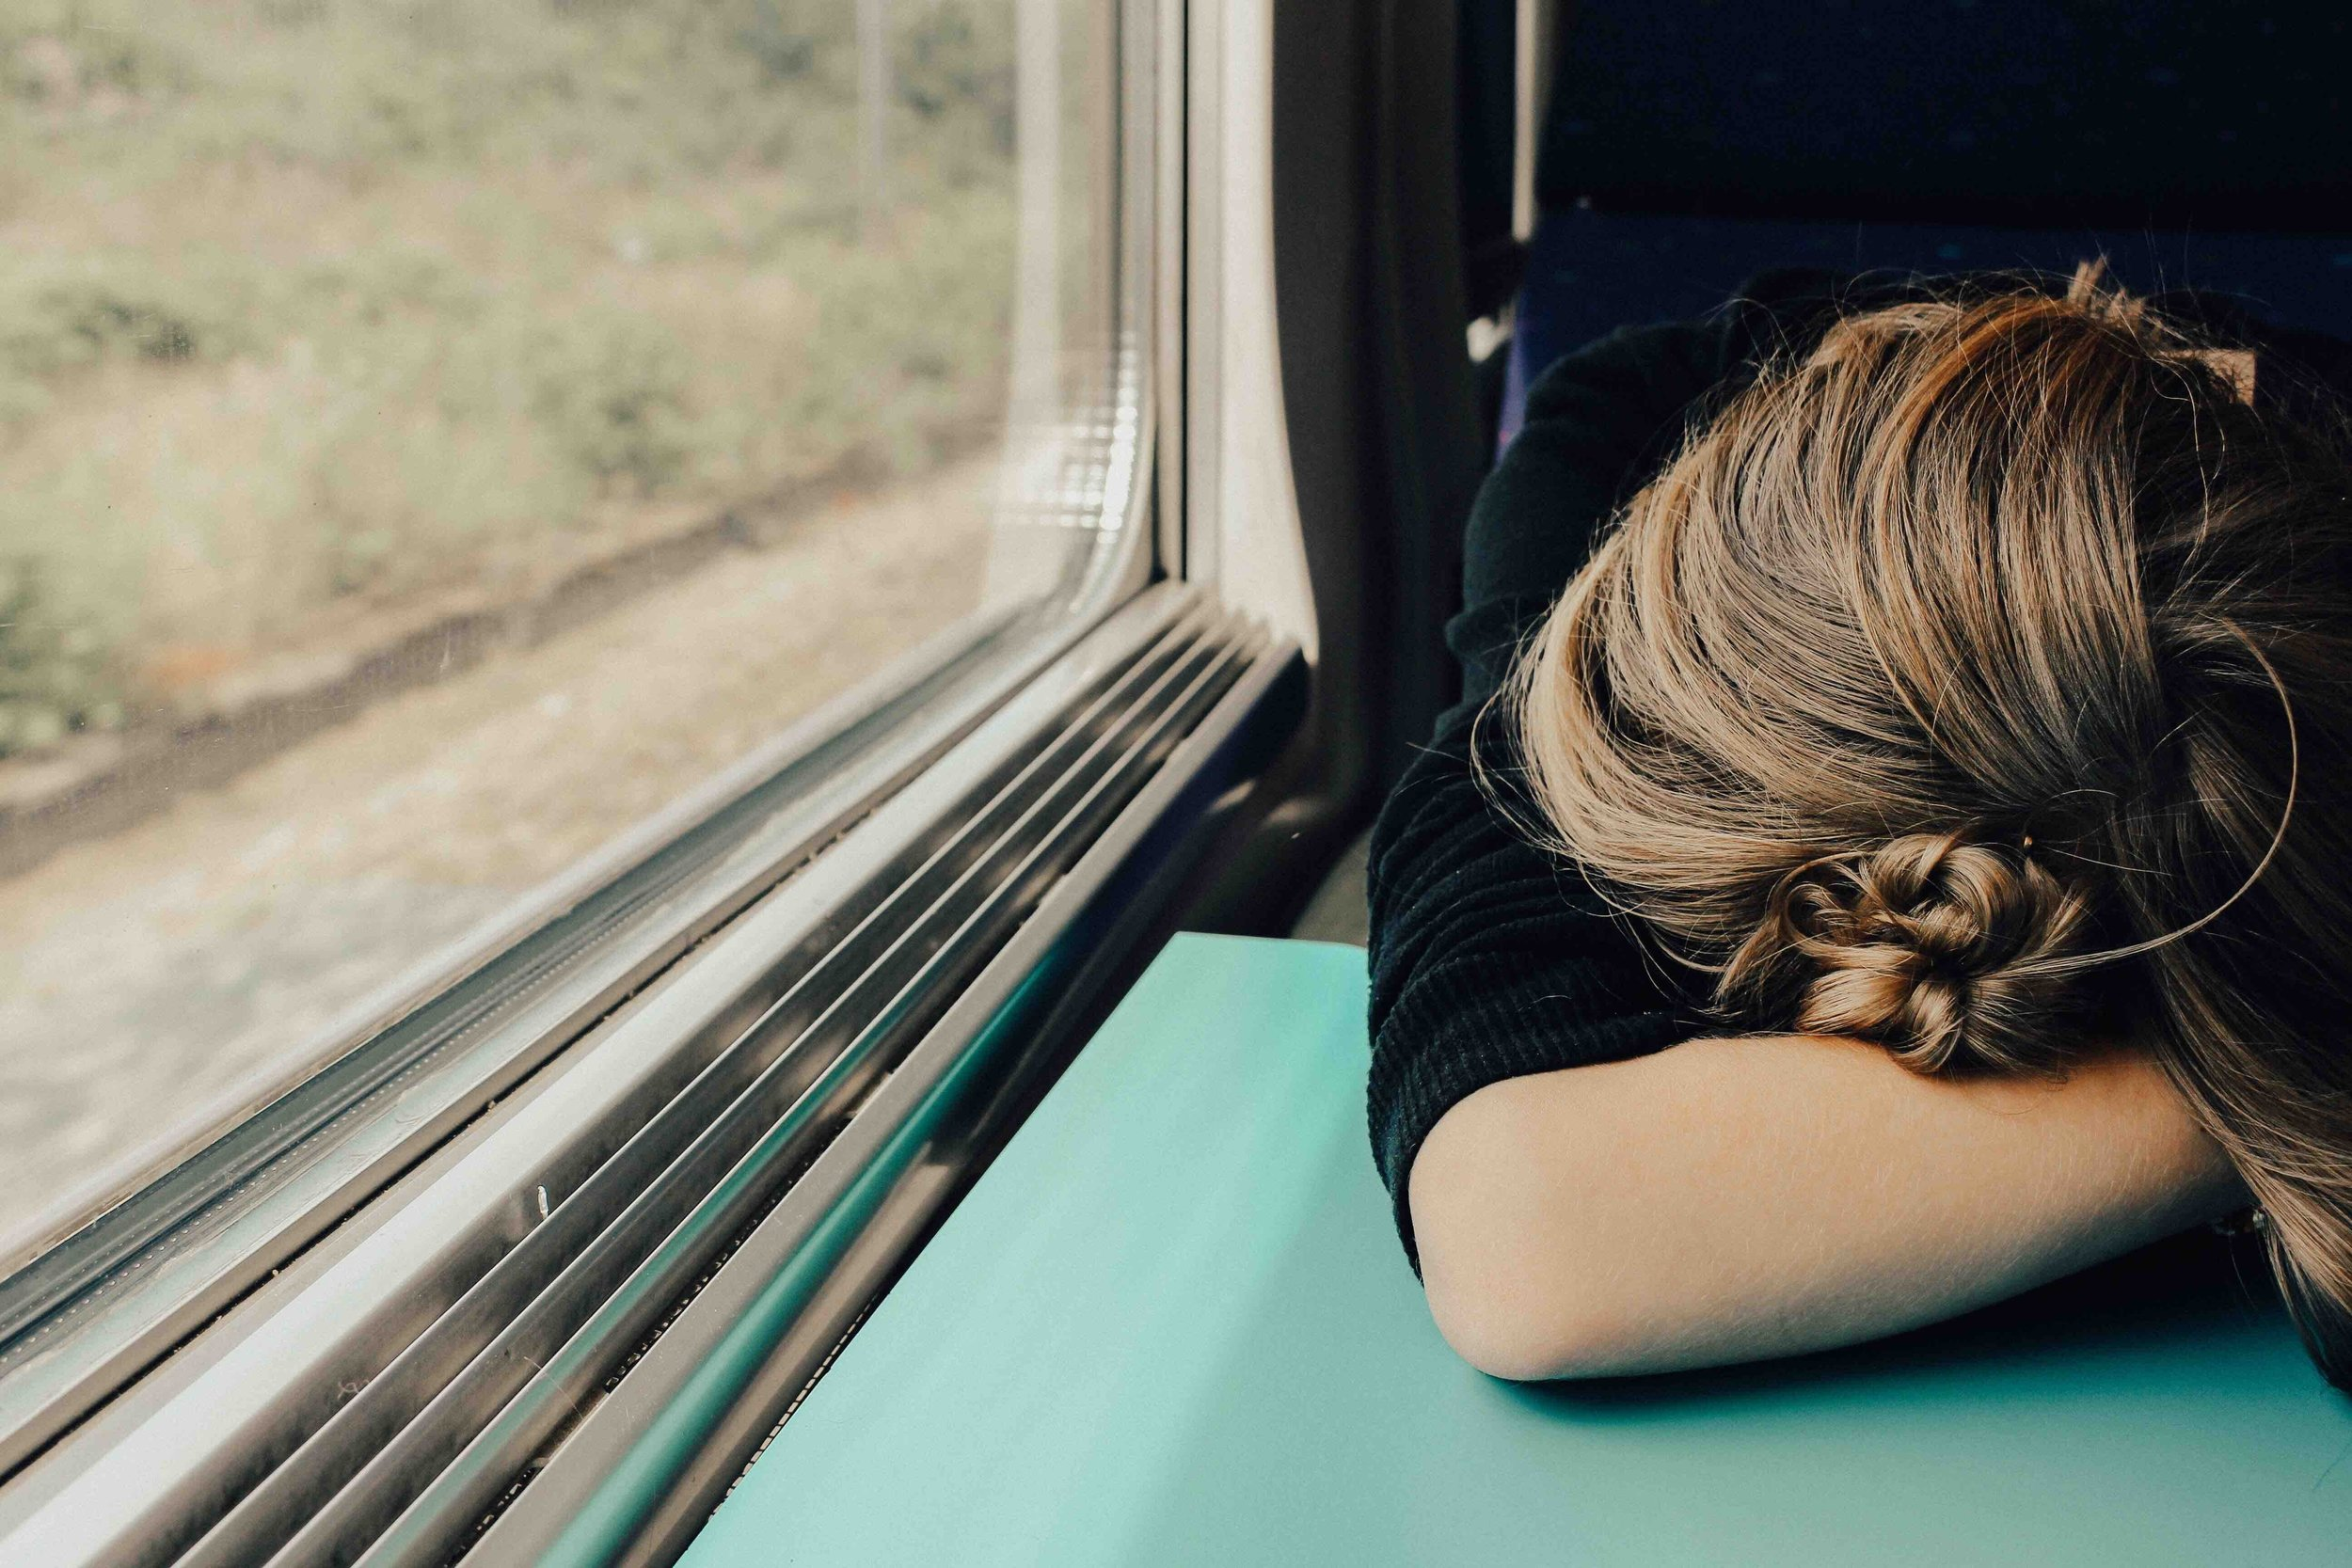 Jetlag - So your biorhythm is out of whack? ChillAX… I've got you covered. Whether you're flying East or West, my tricks of the trade will redress your internal clock in no time at all.Photo by Abbie Bernet on Unsplash